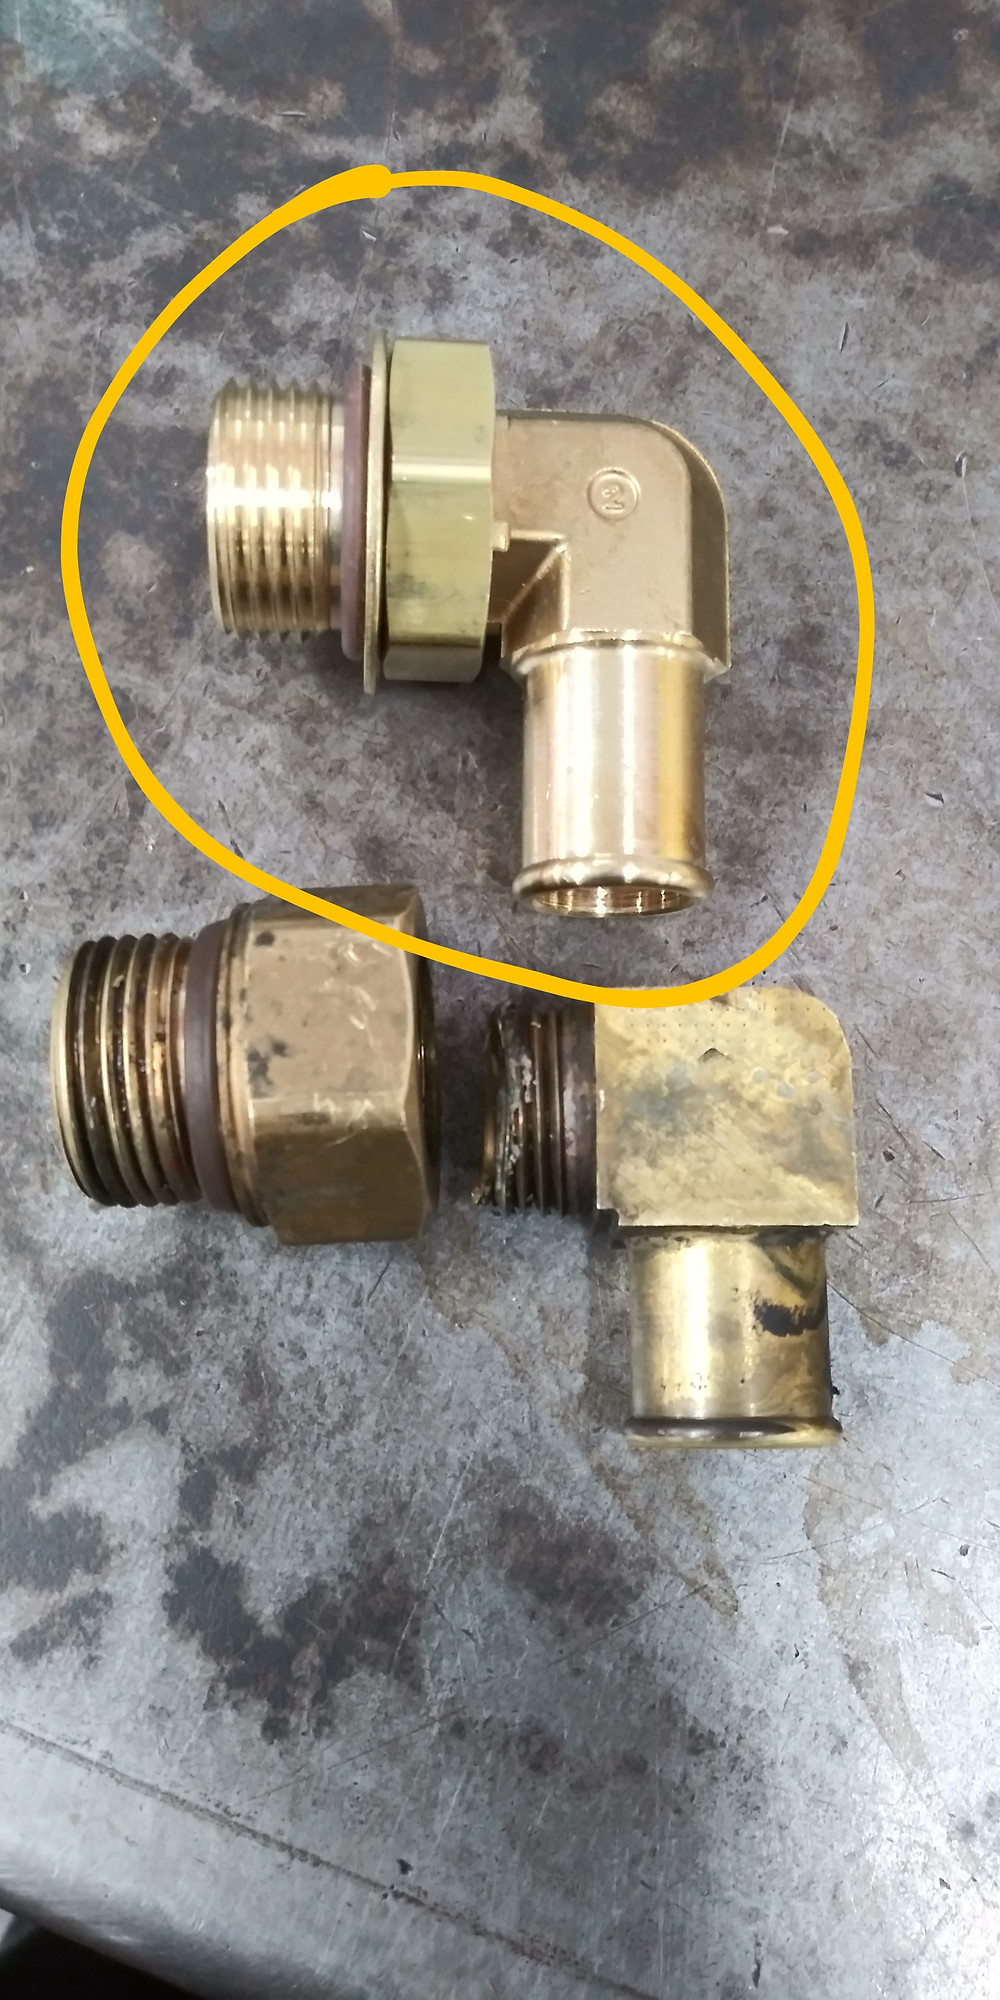 new fitting above failed one at the bottom